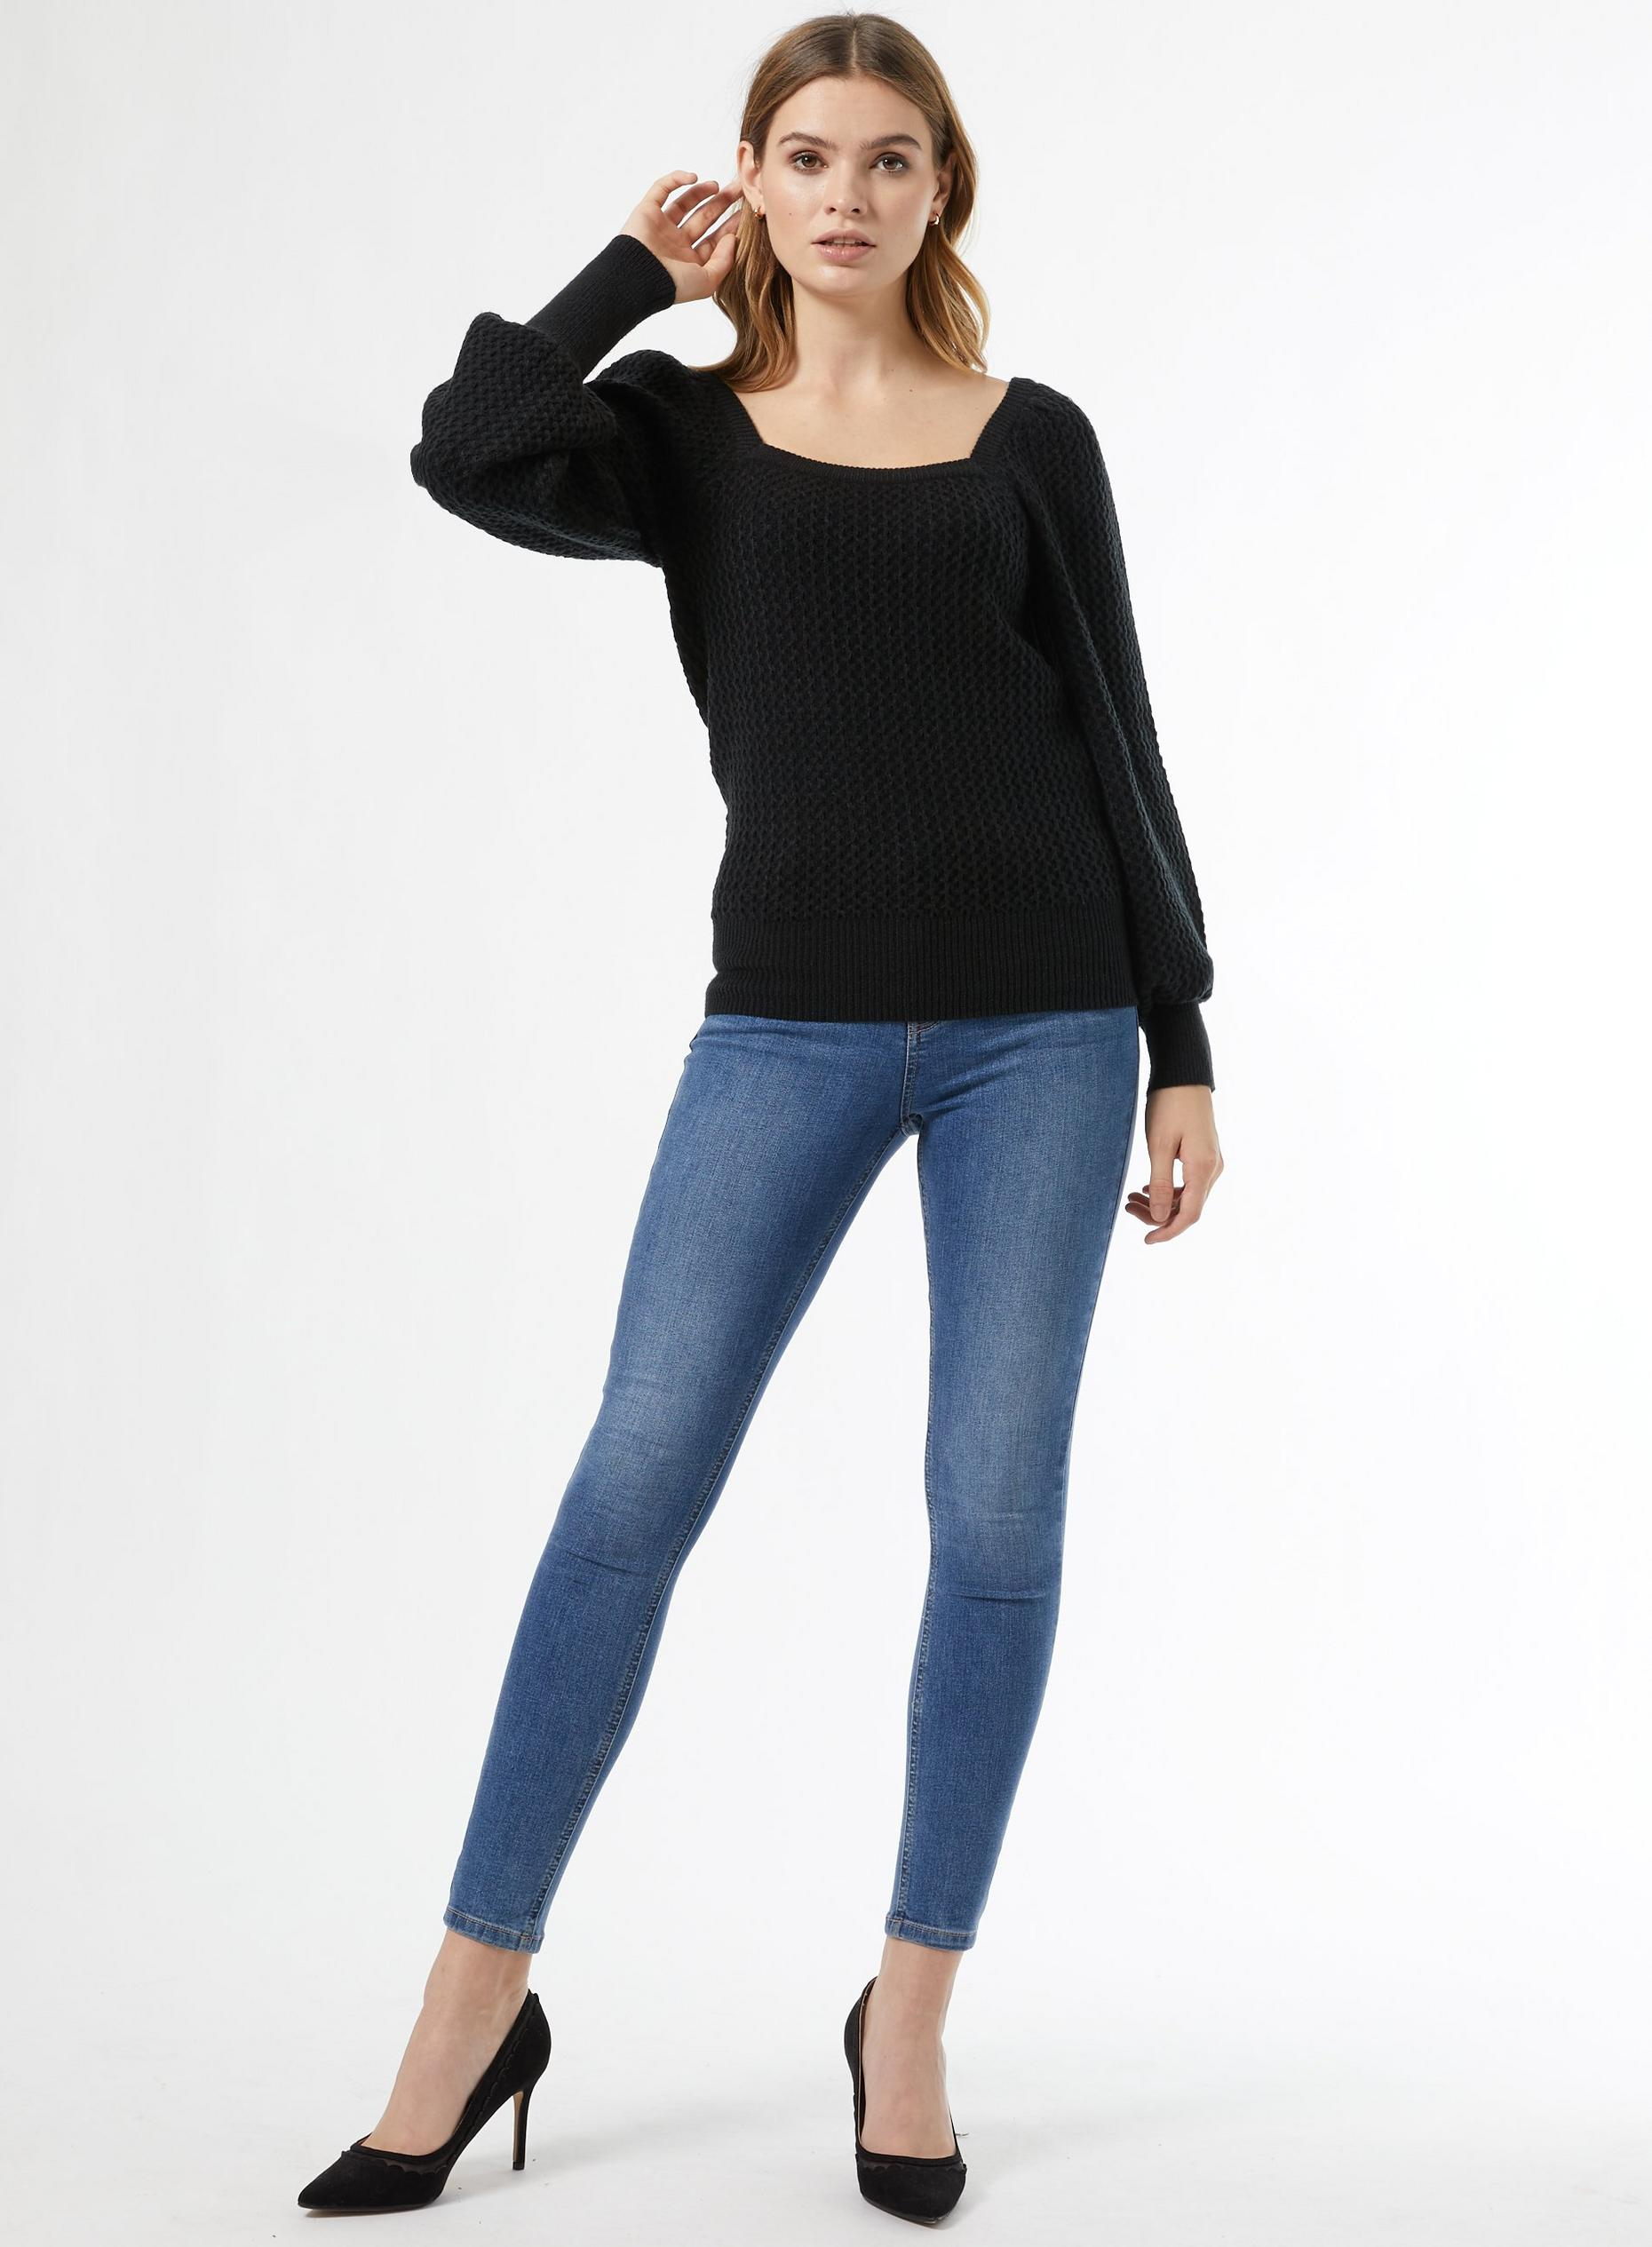 Black Square Neck Jumper